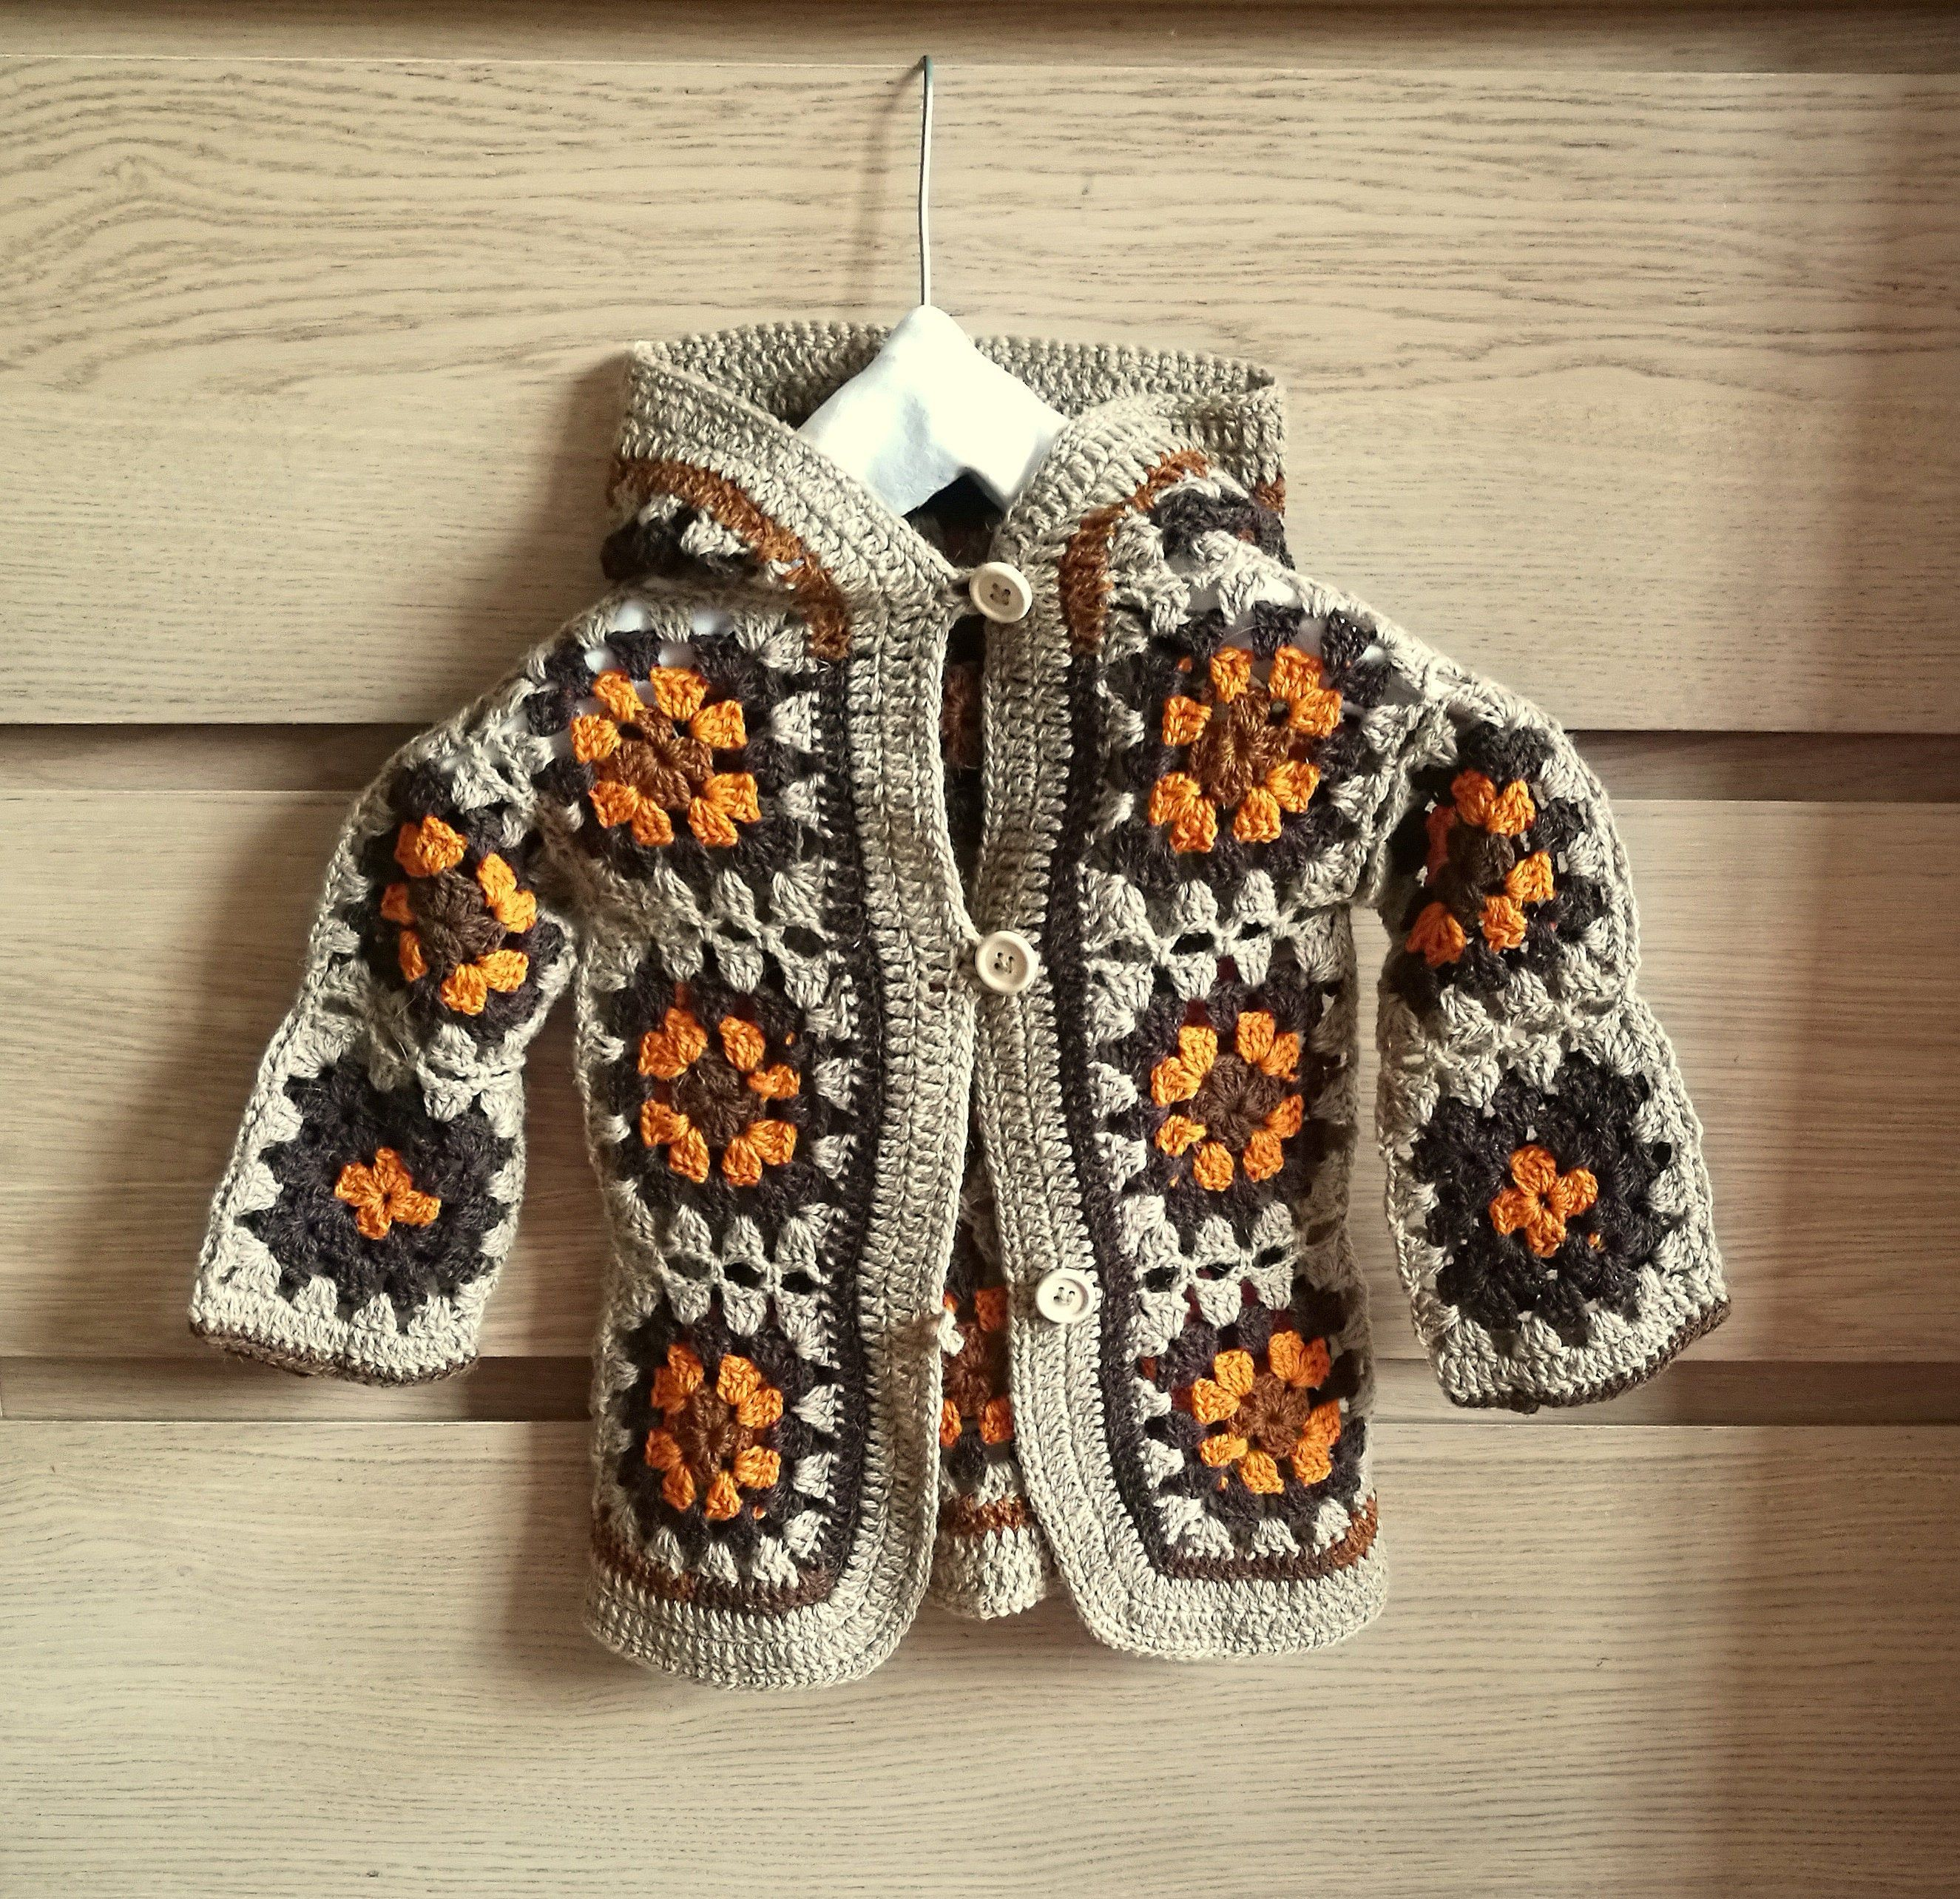 Pure wool crochet granny squares sweater Beige brown kids cardigan for spring 2-4 years knitted unisex hooded sweater